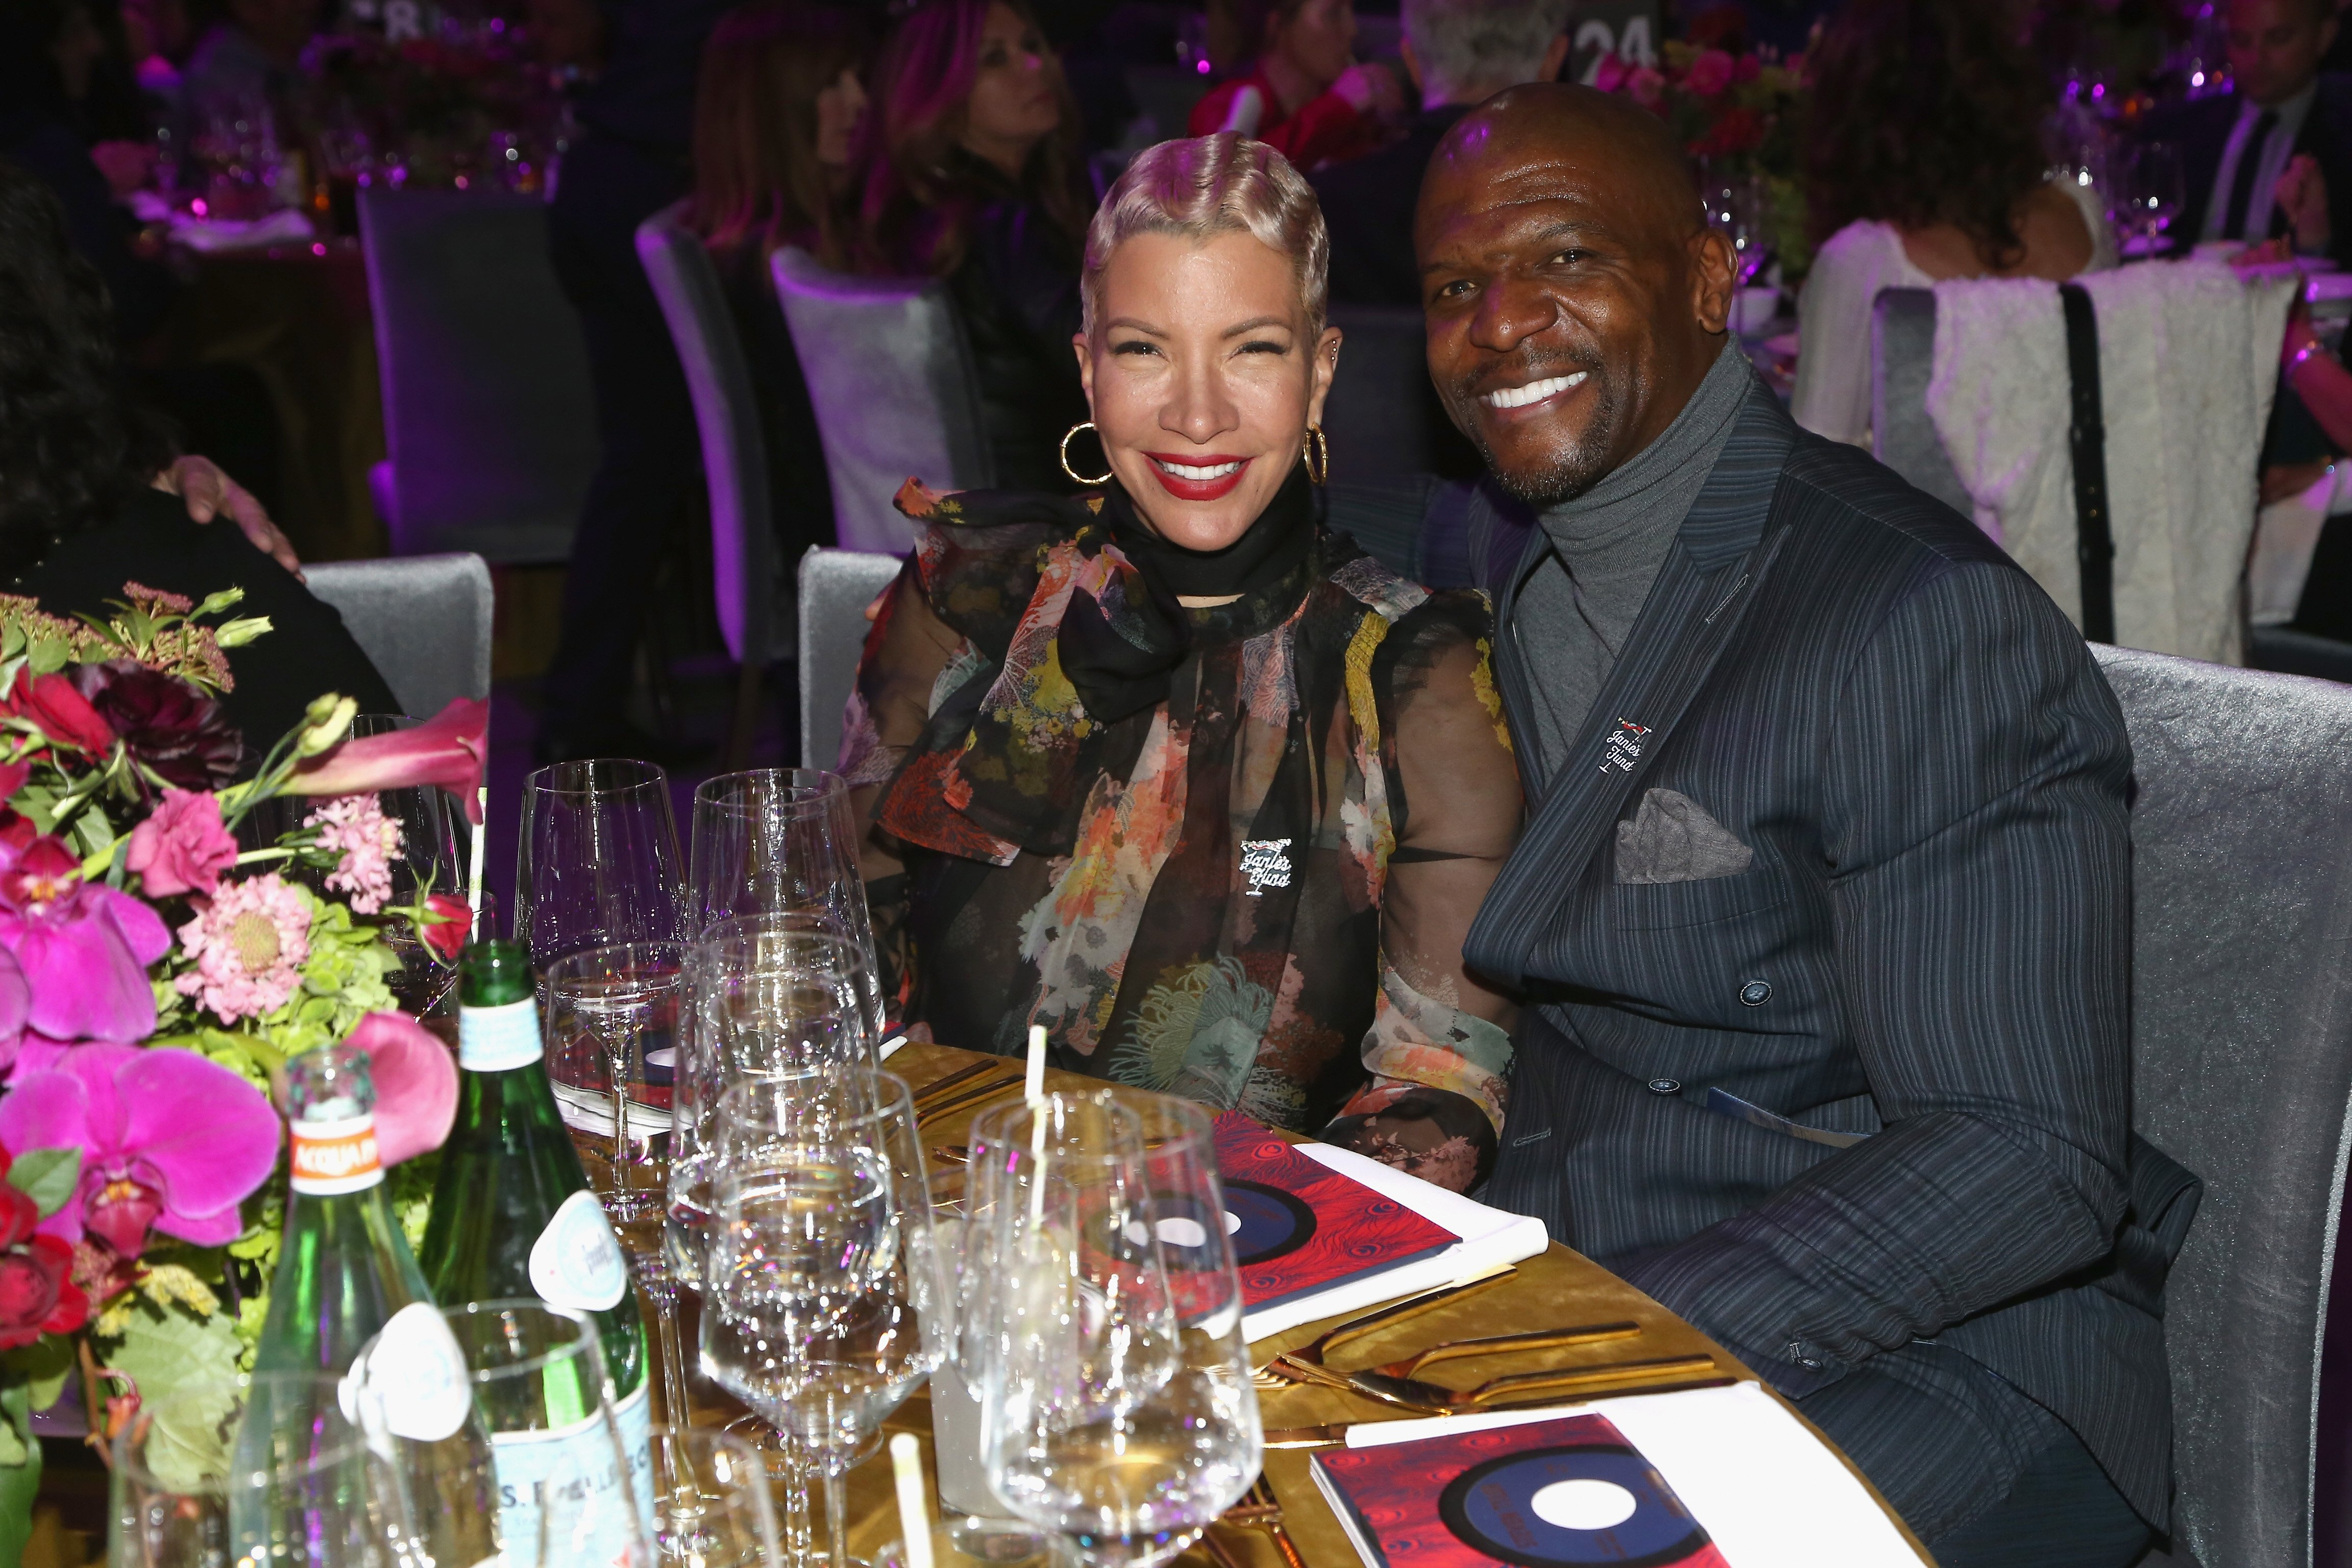 Rebecca and Tery Crews at Steven Tyler and Live Nation presents Inaugural Janie's Fund Gala & GRAMMY Viewing Party on January 28, 2018. | Photo: GettyImages